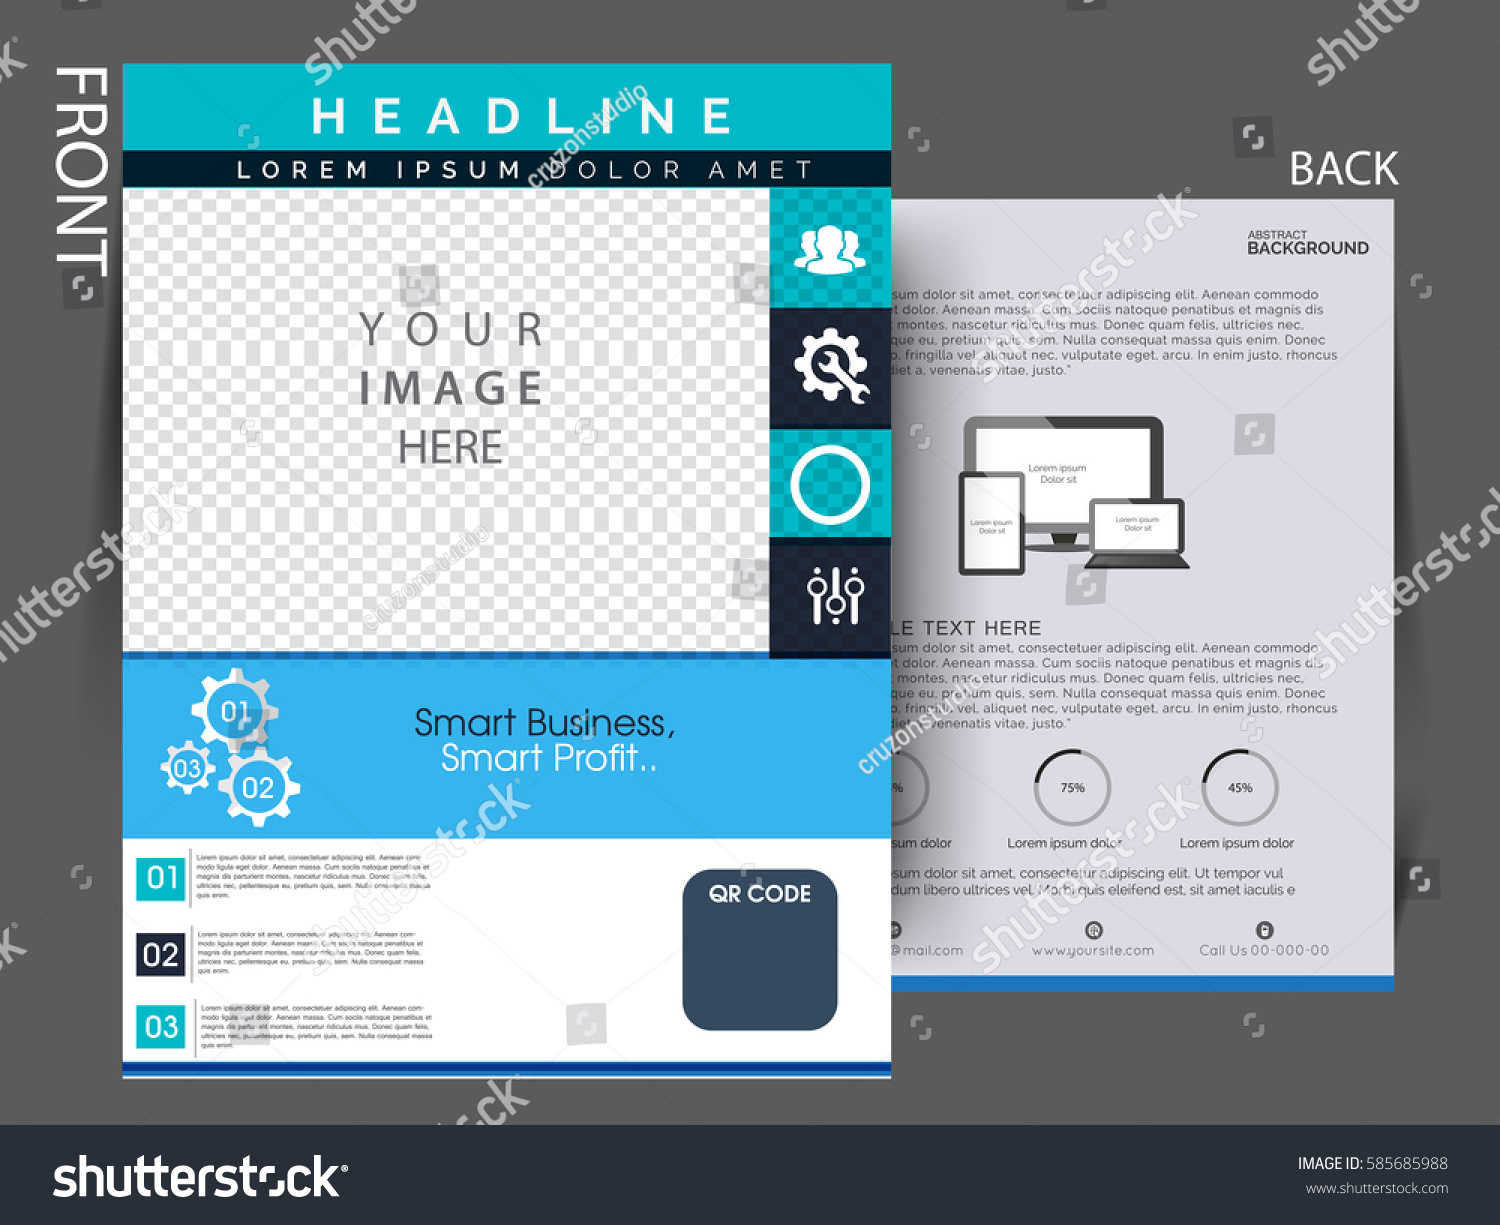 download corporate trifold brochure psd psddaddy com. travel ...